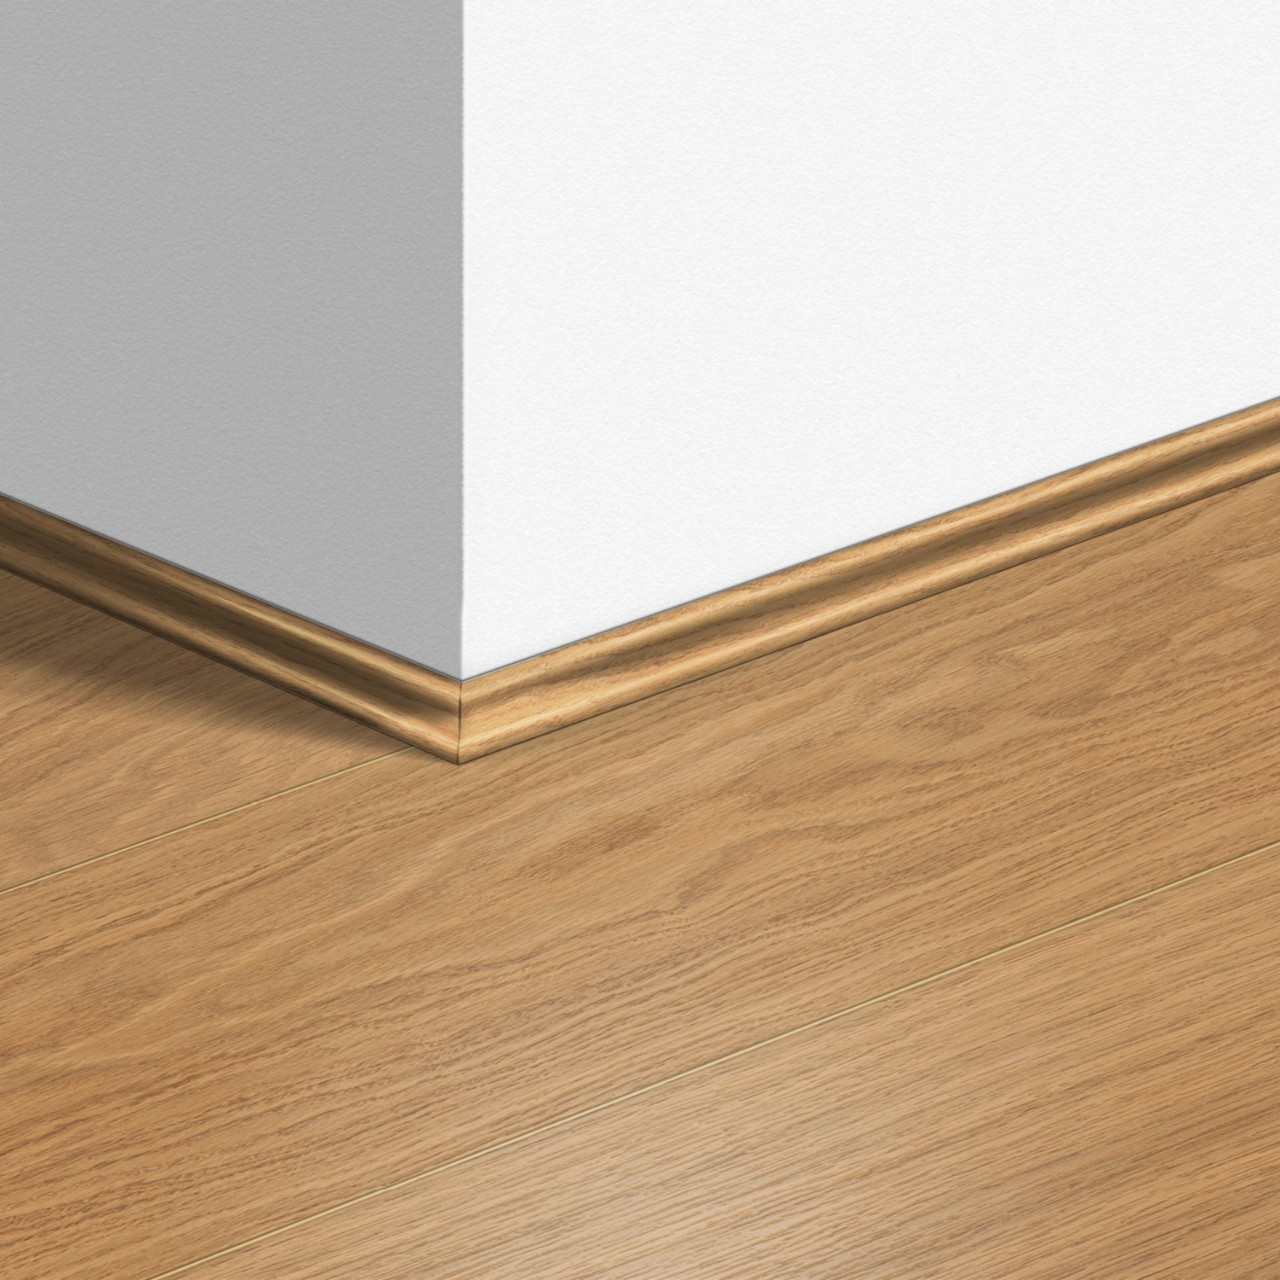 QSSCOT Laminate Accessories Oak natural oiled QSSCOT01539